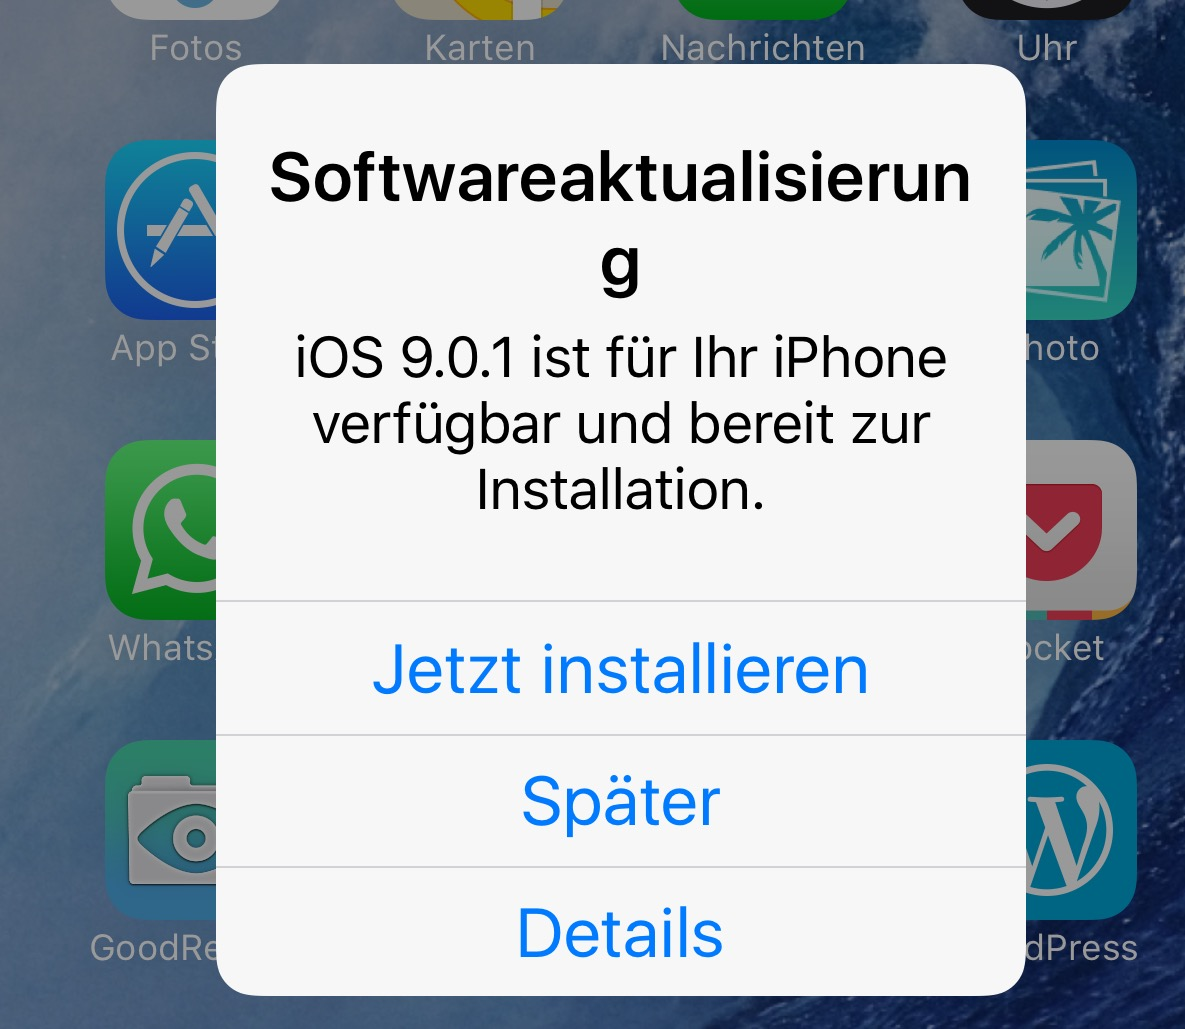 Apple Update auf ios 9.0.1